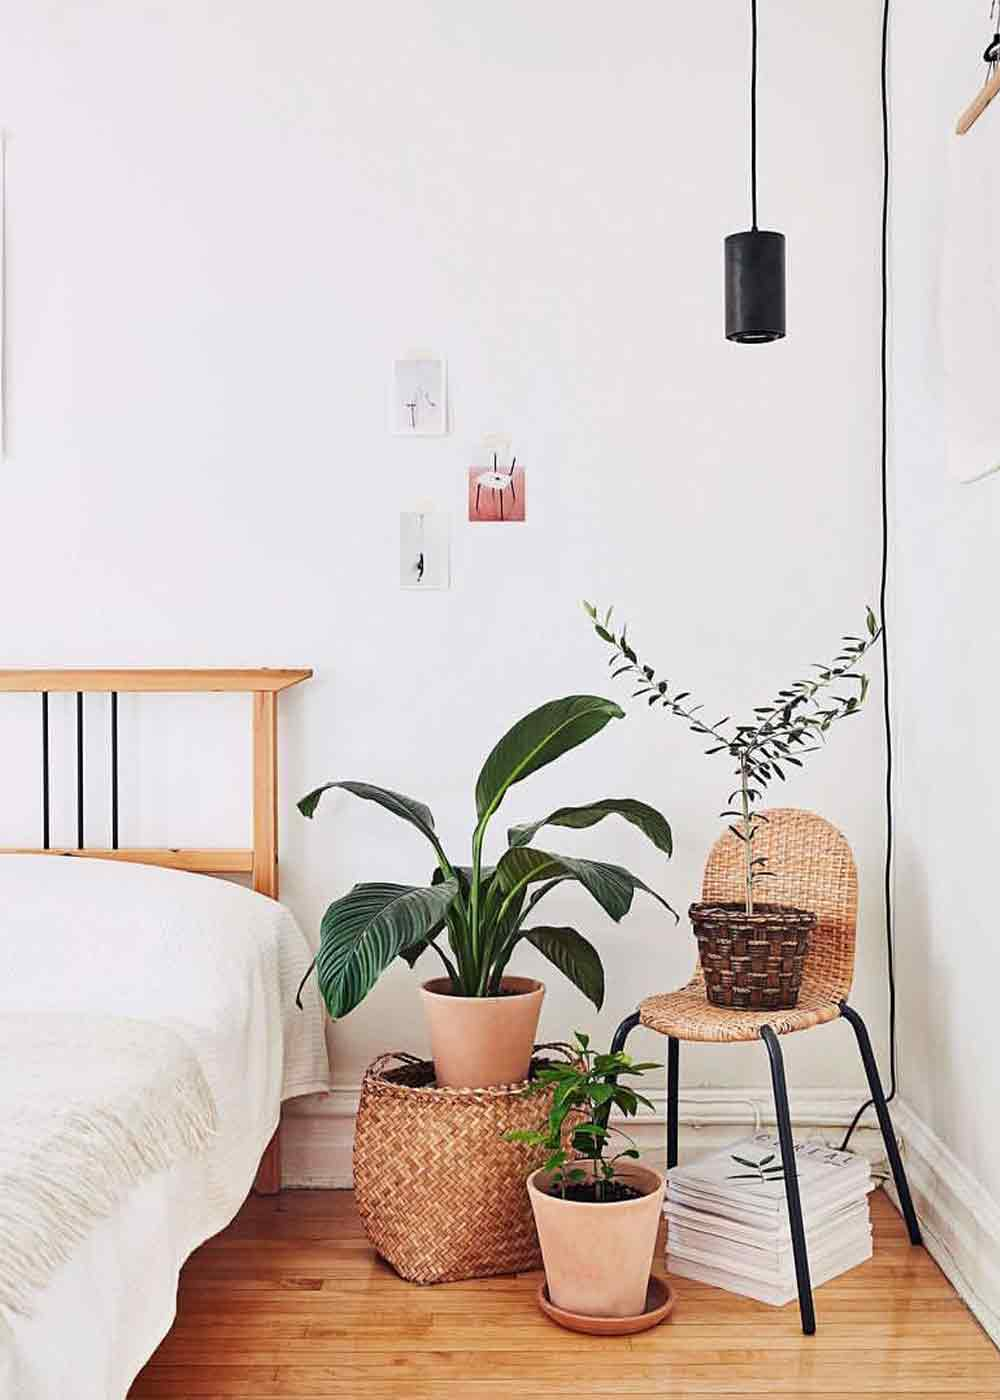 Large Black Aspect™ Hanging Grow light growing an olive tree